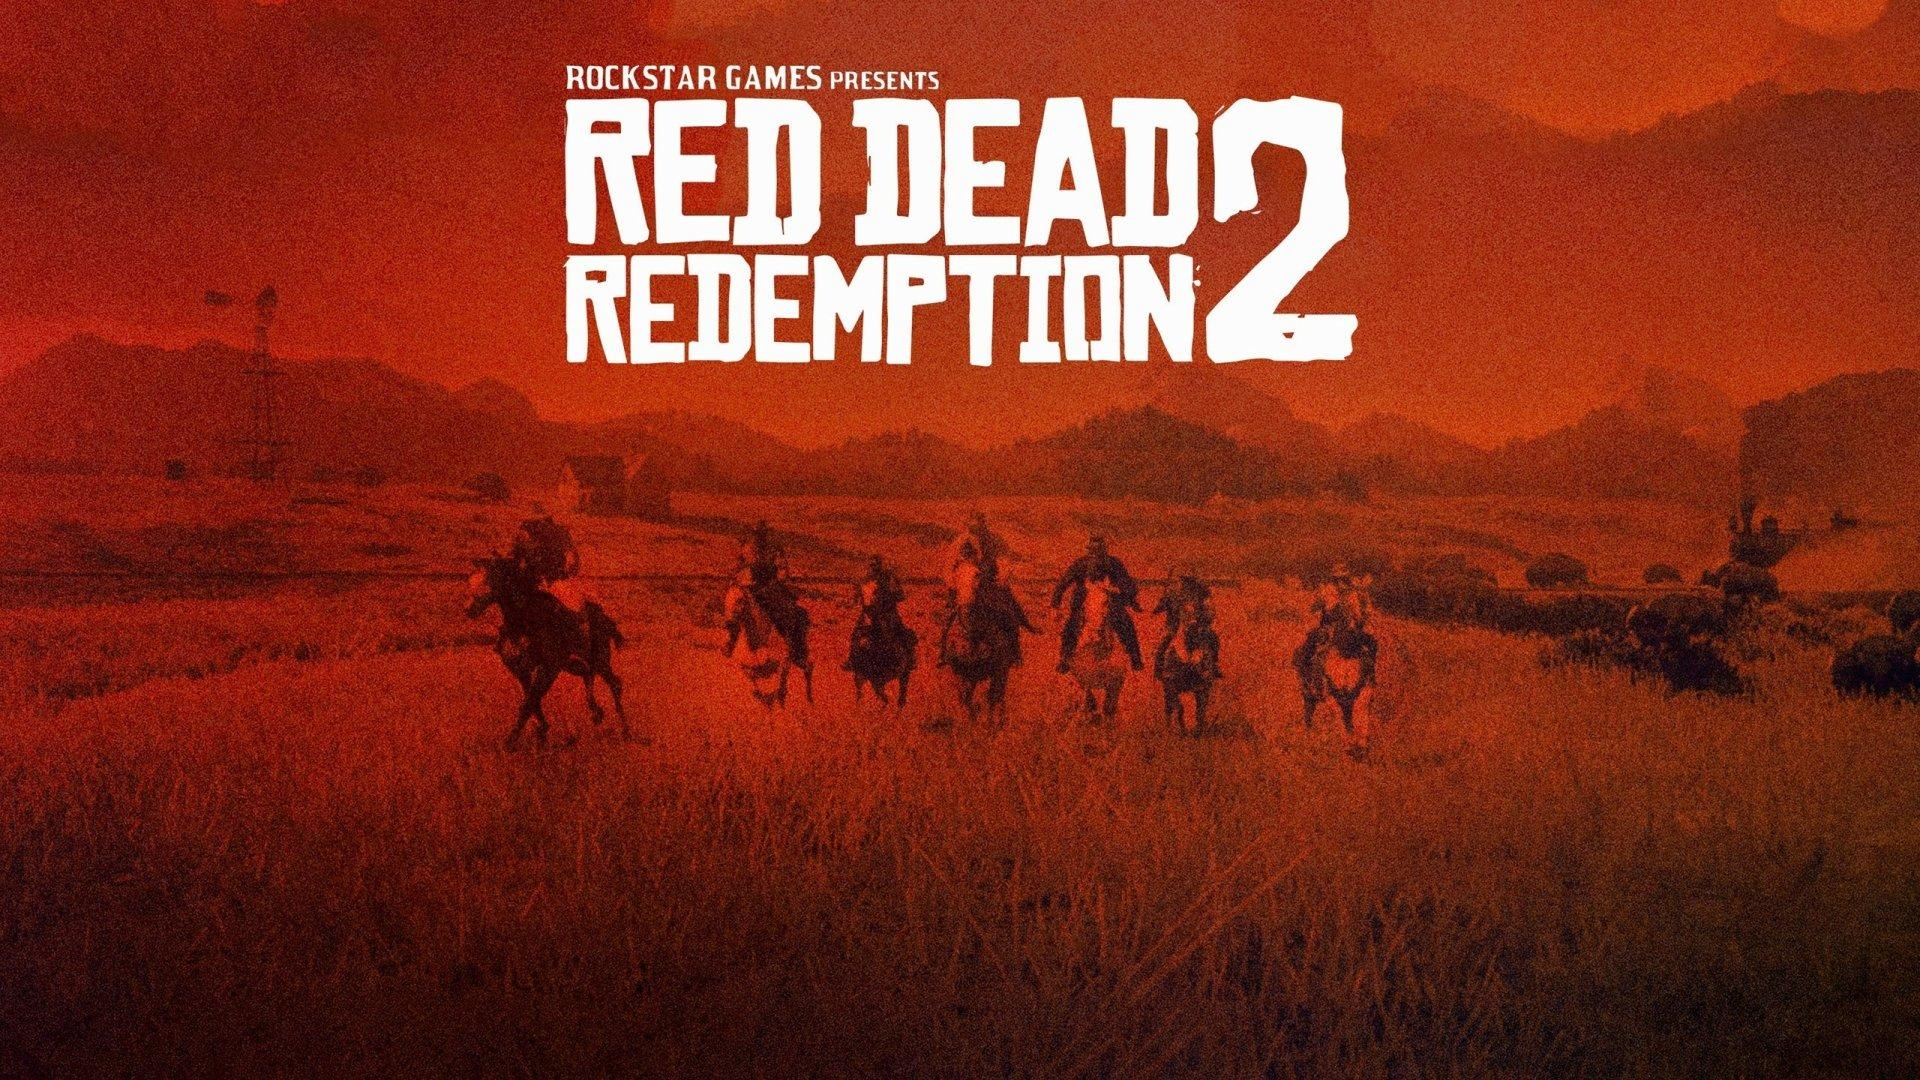 Red Dead Redemption 2 HD Wallpapers - Wallpaper Cave